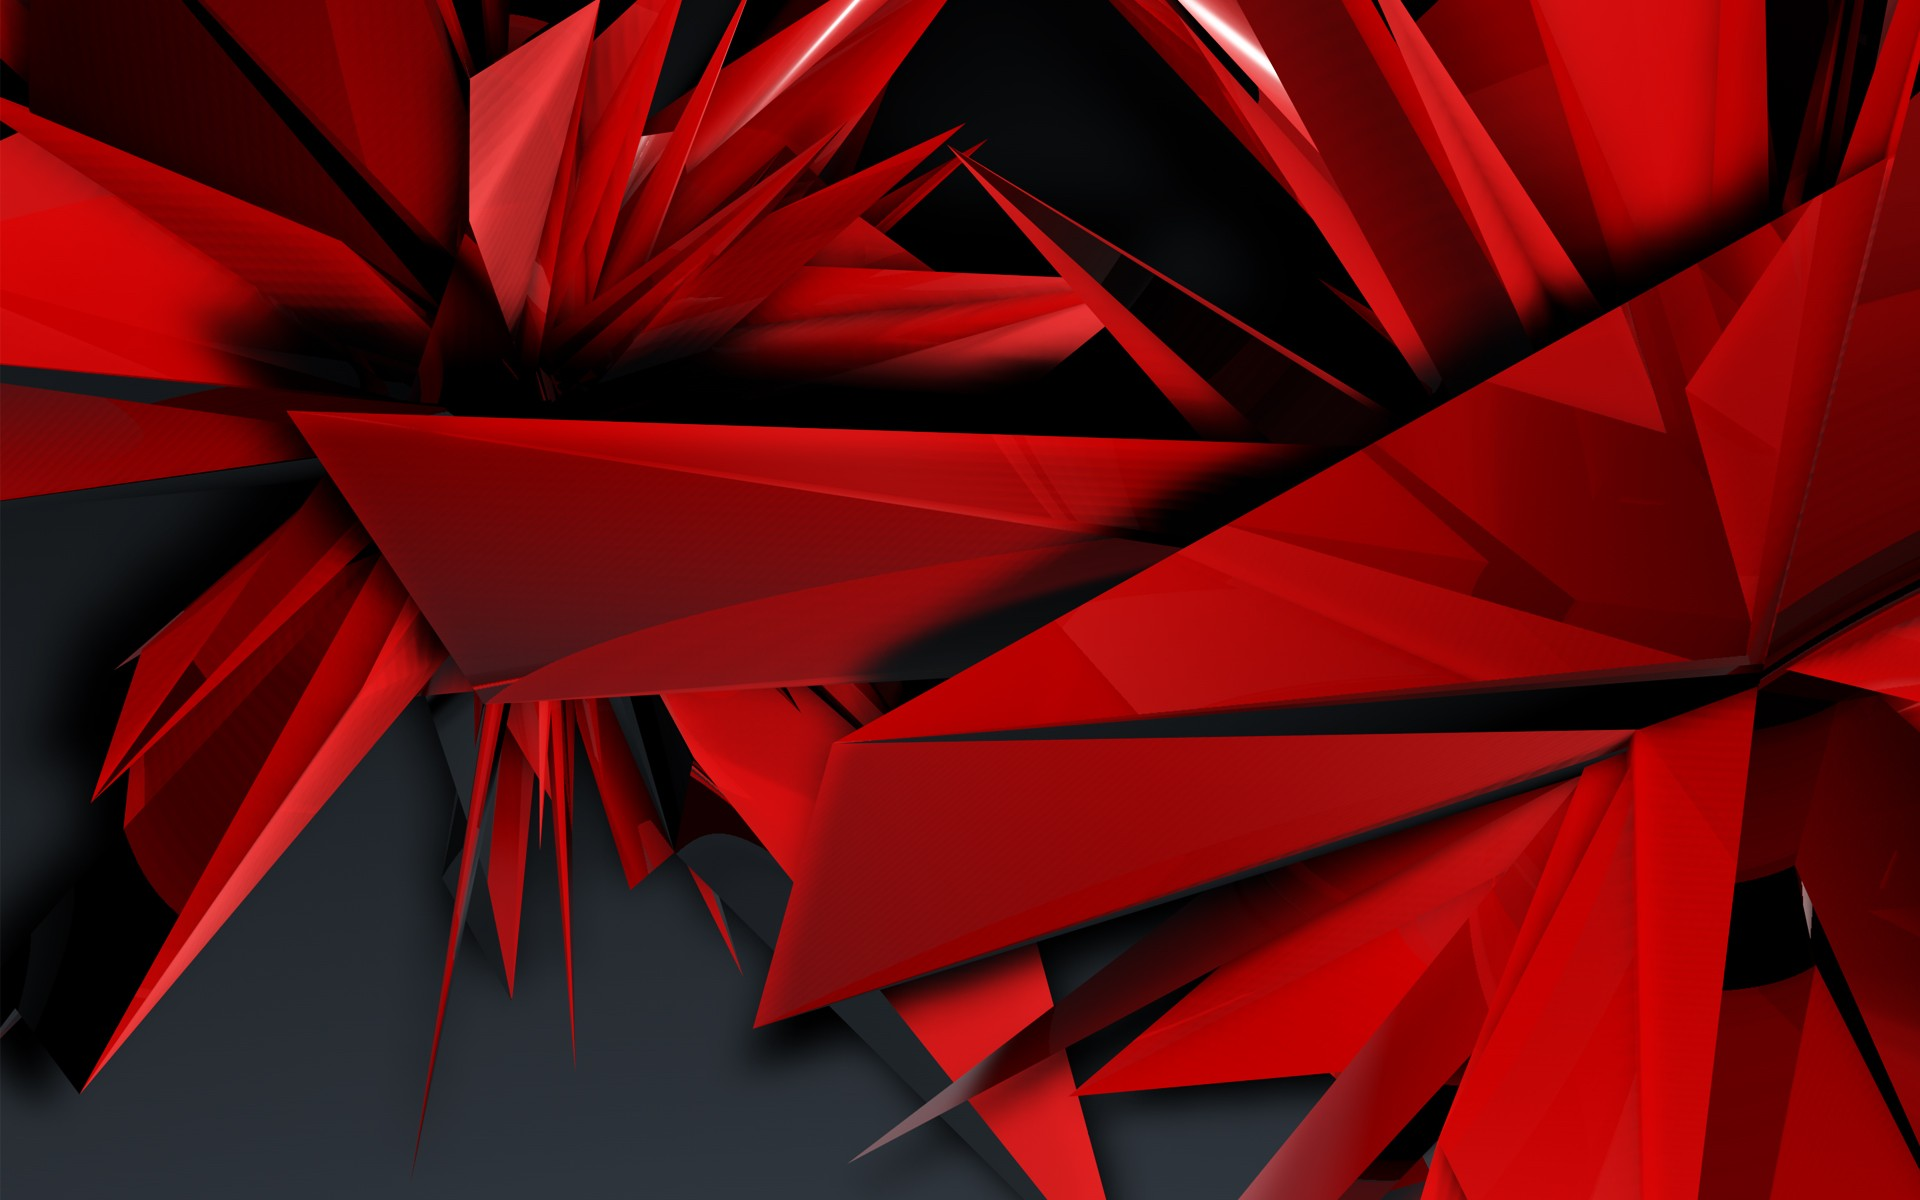 Download Red Abstract Cool Wallpaper 5302 1920x1200 px 1920x1200